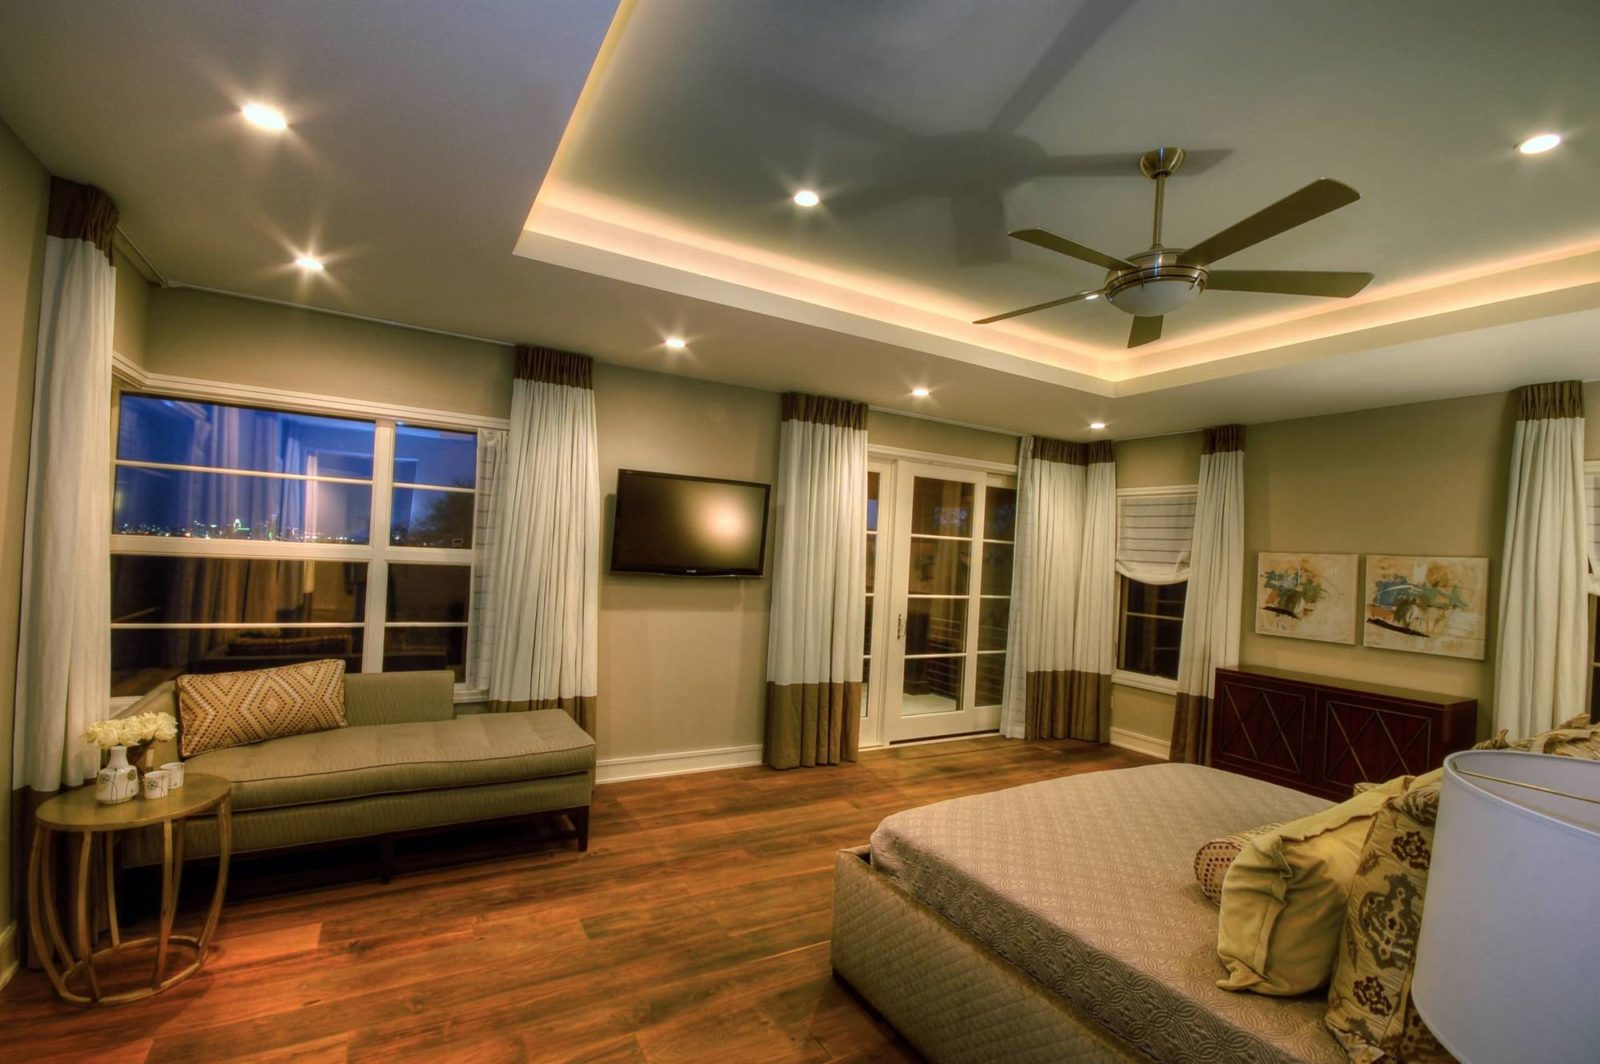 Alcove ceiling lighting boatylicious indirect lighting around the tray ceiling aloadofball Images